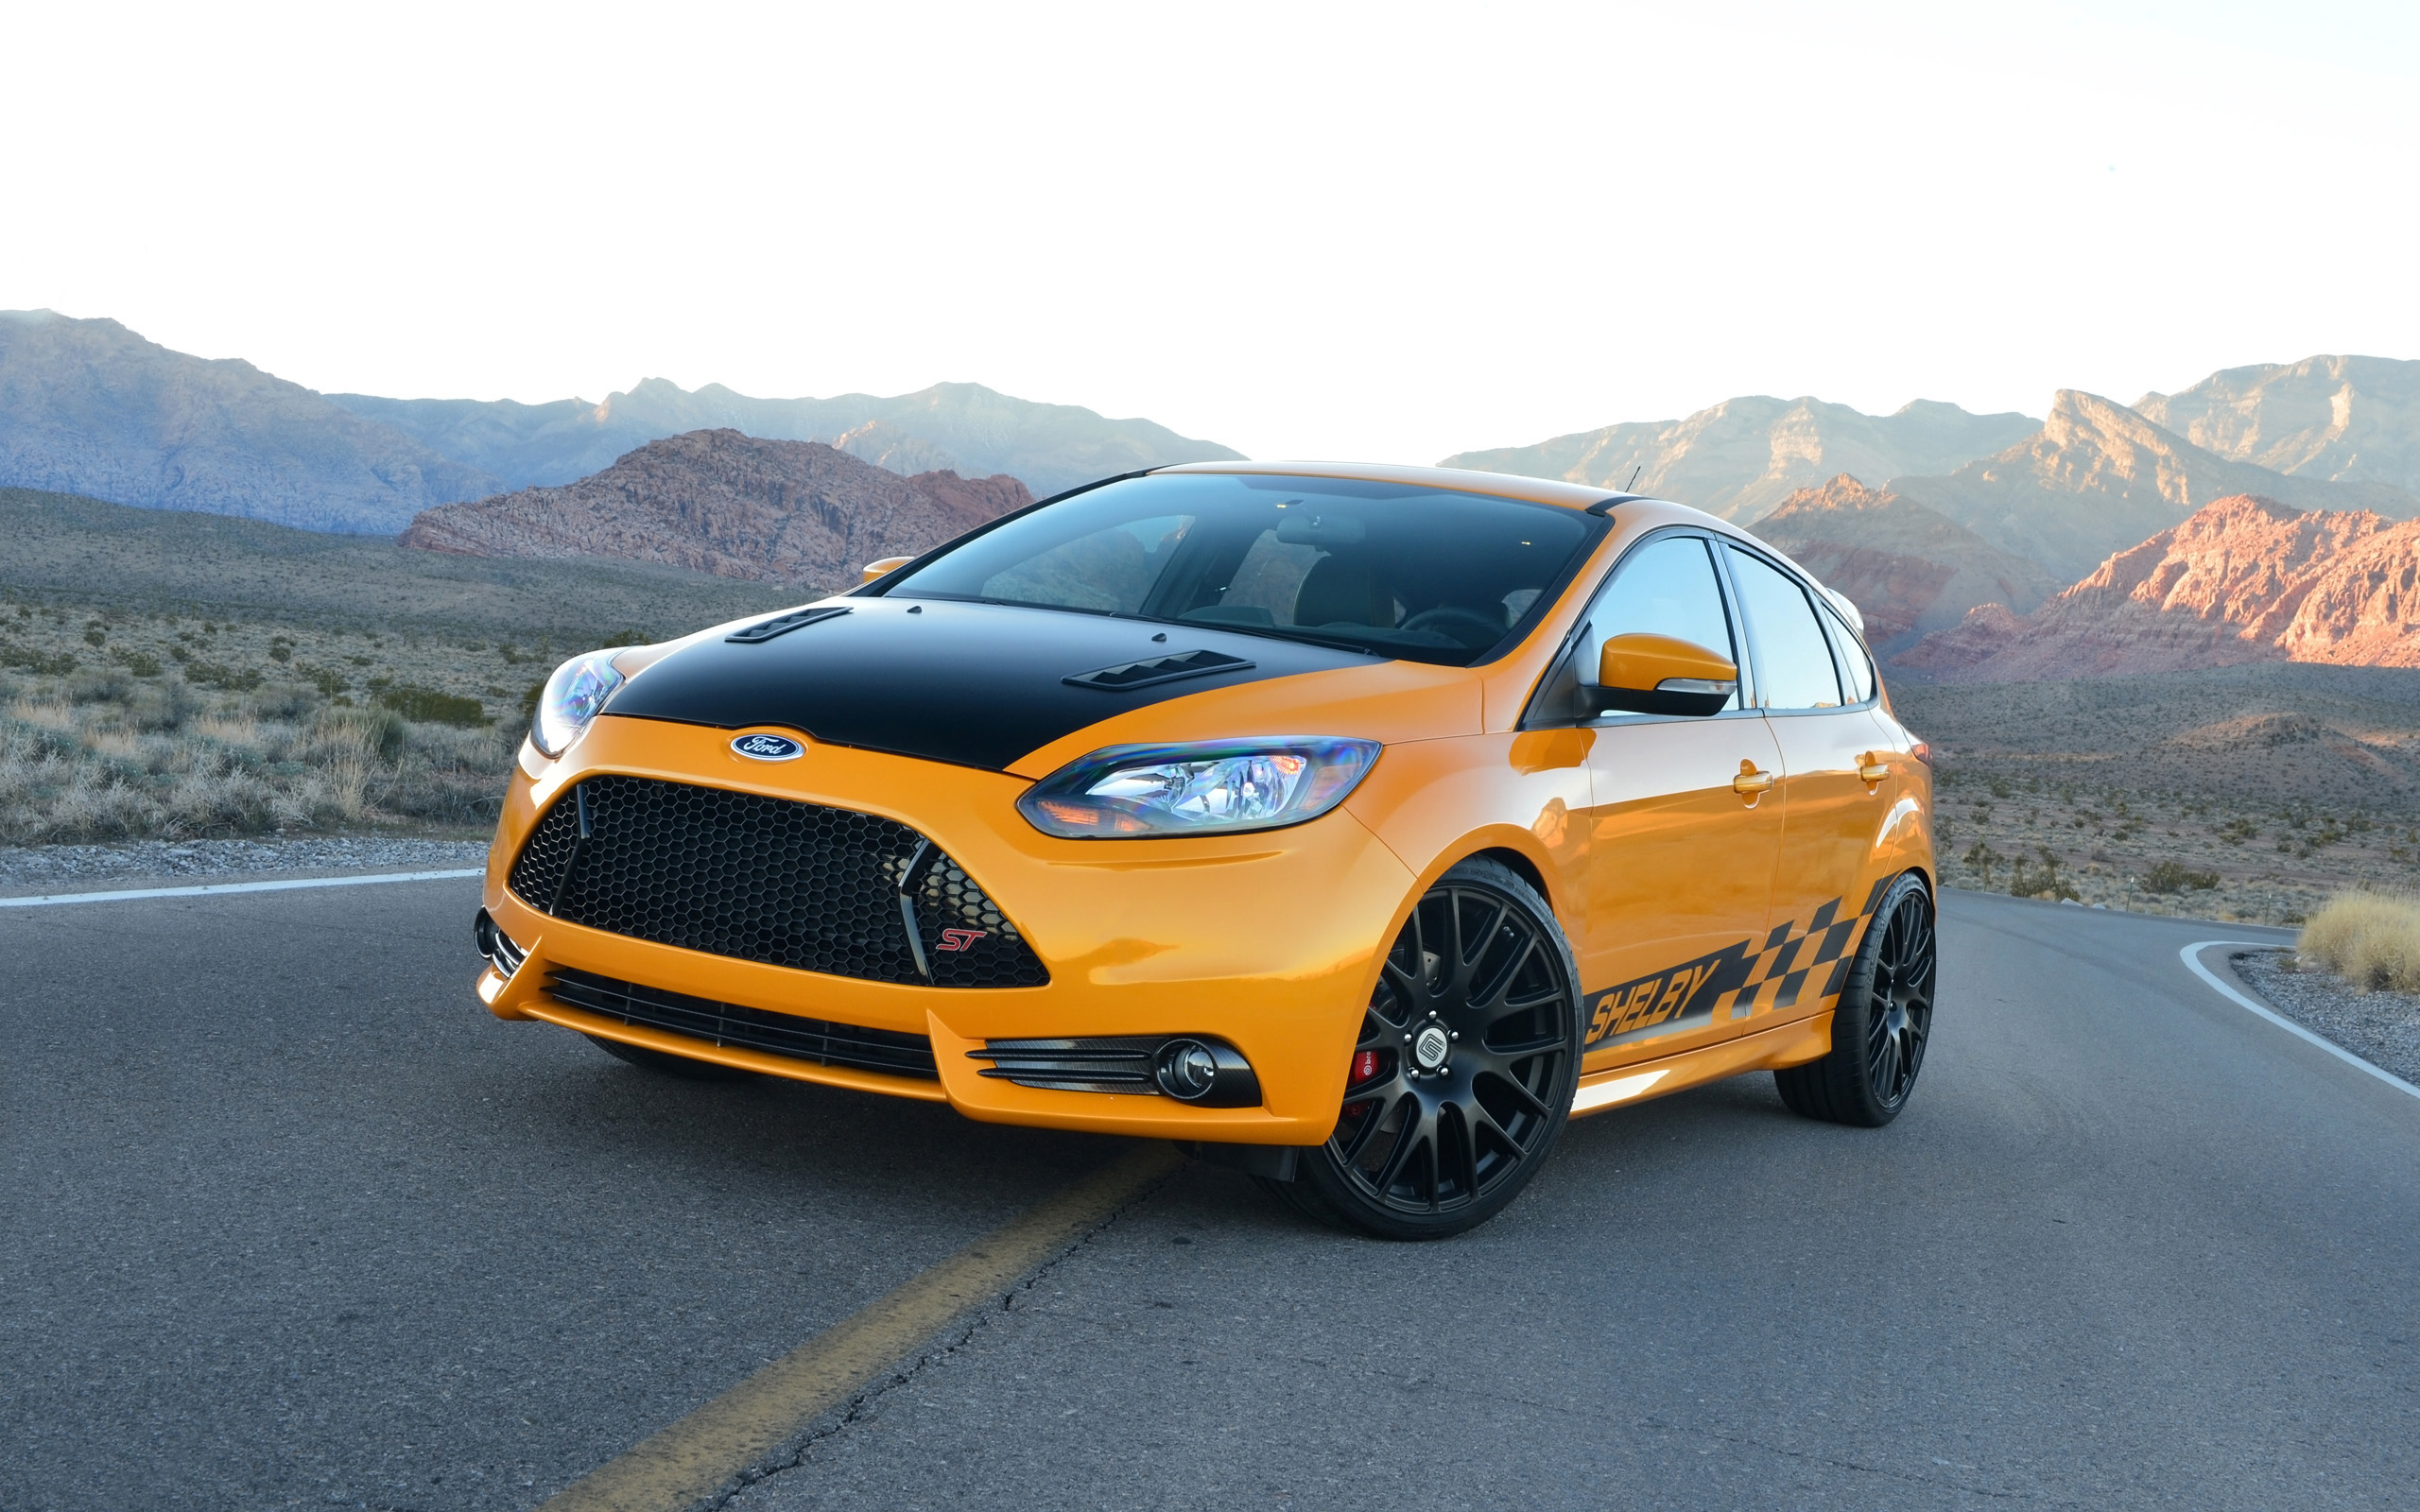 2014 shelby ford focus st wallpaper hd car wallpapers id 3796. Black Bedroom Furniture Sets. Home Design Ideas